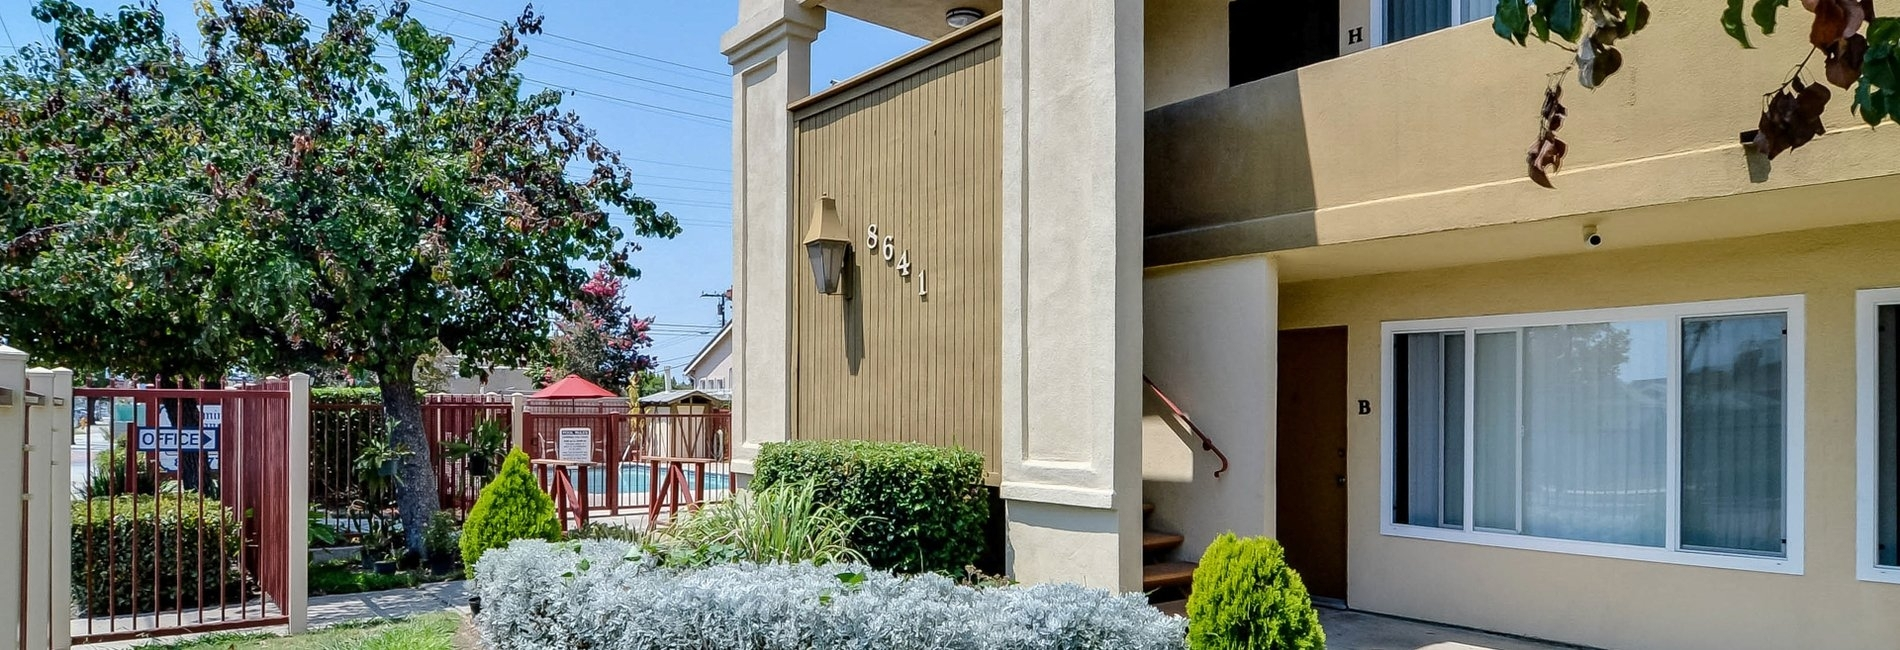 Apartments For Rent In Garden Grove, Ca | Westminster Manor for Garden Manor Apartments